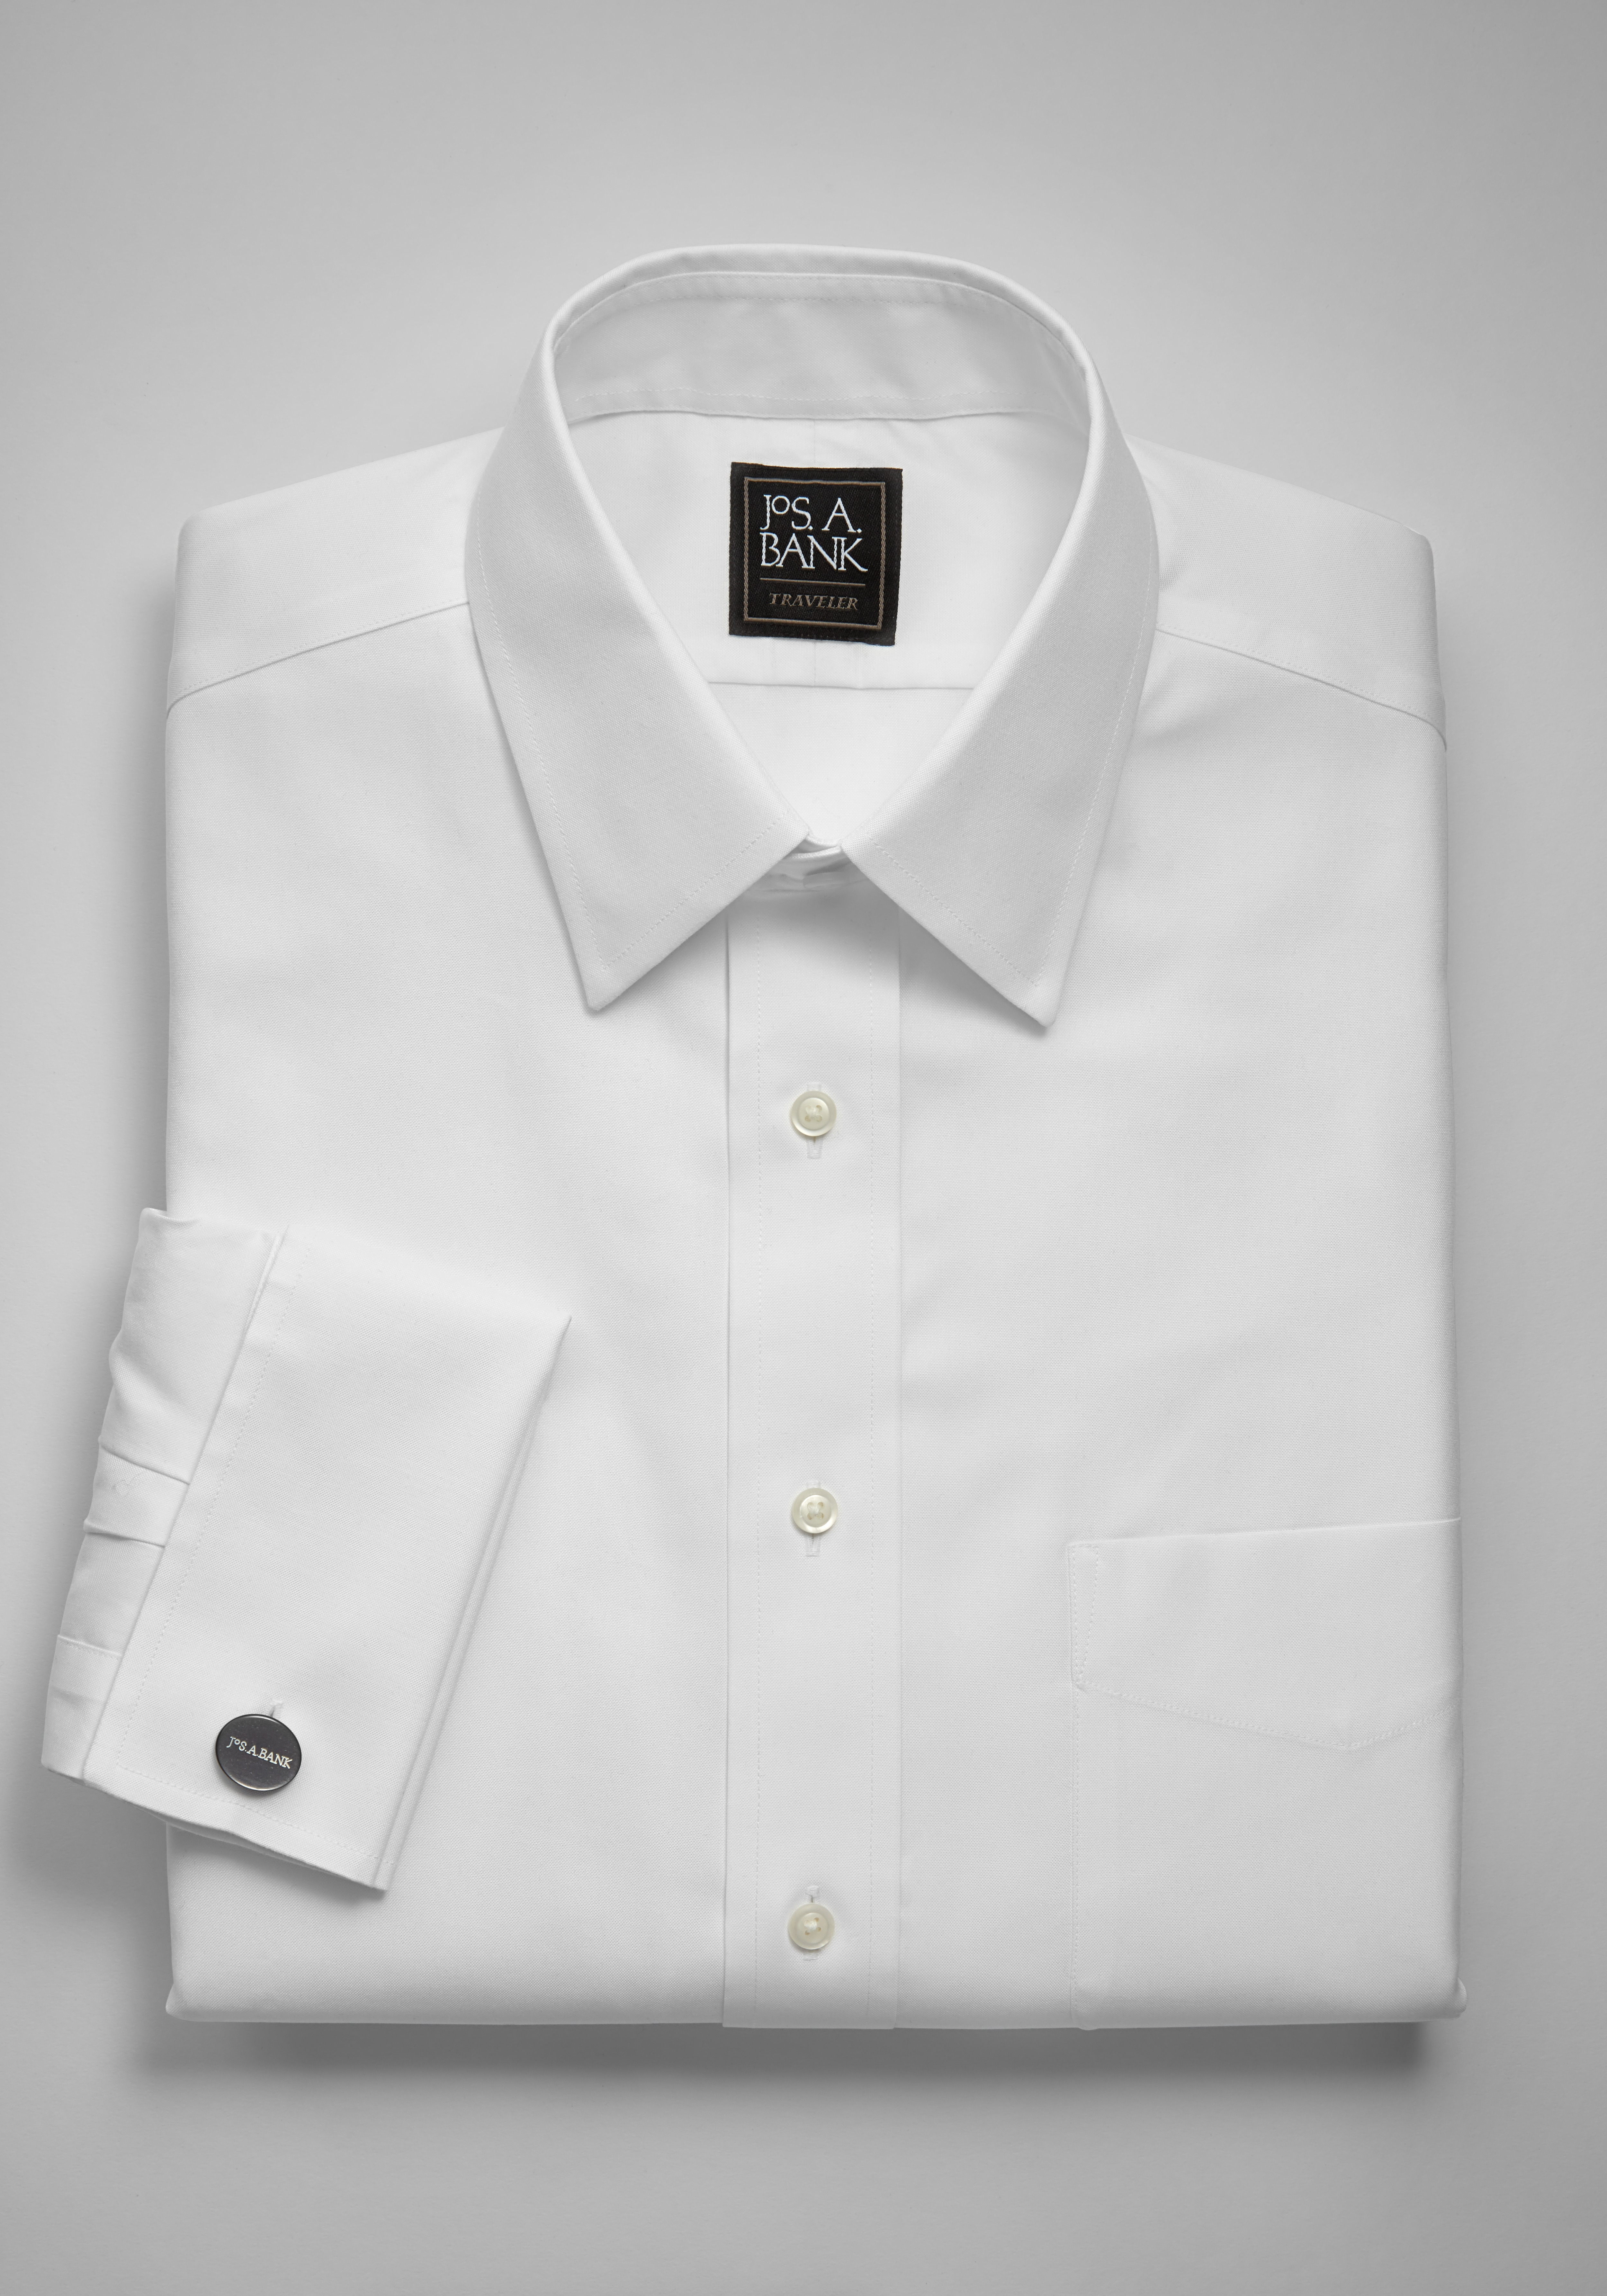 Mens 18 34//35 Jos A Bank Classic Fit Textured White French Cuff Cotton Tuxedo...